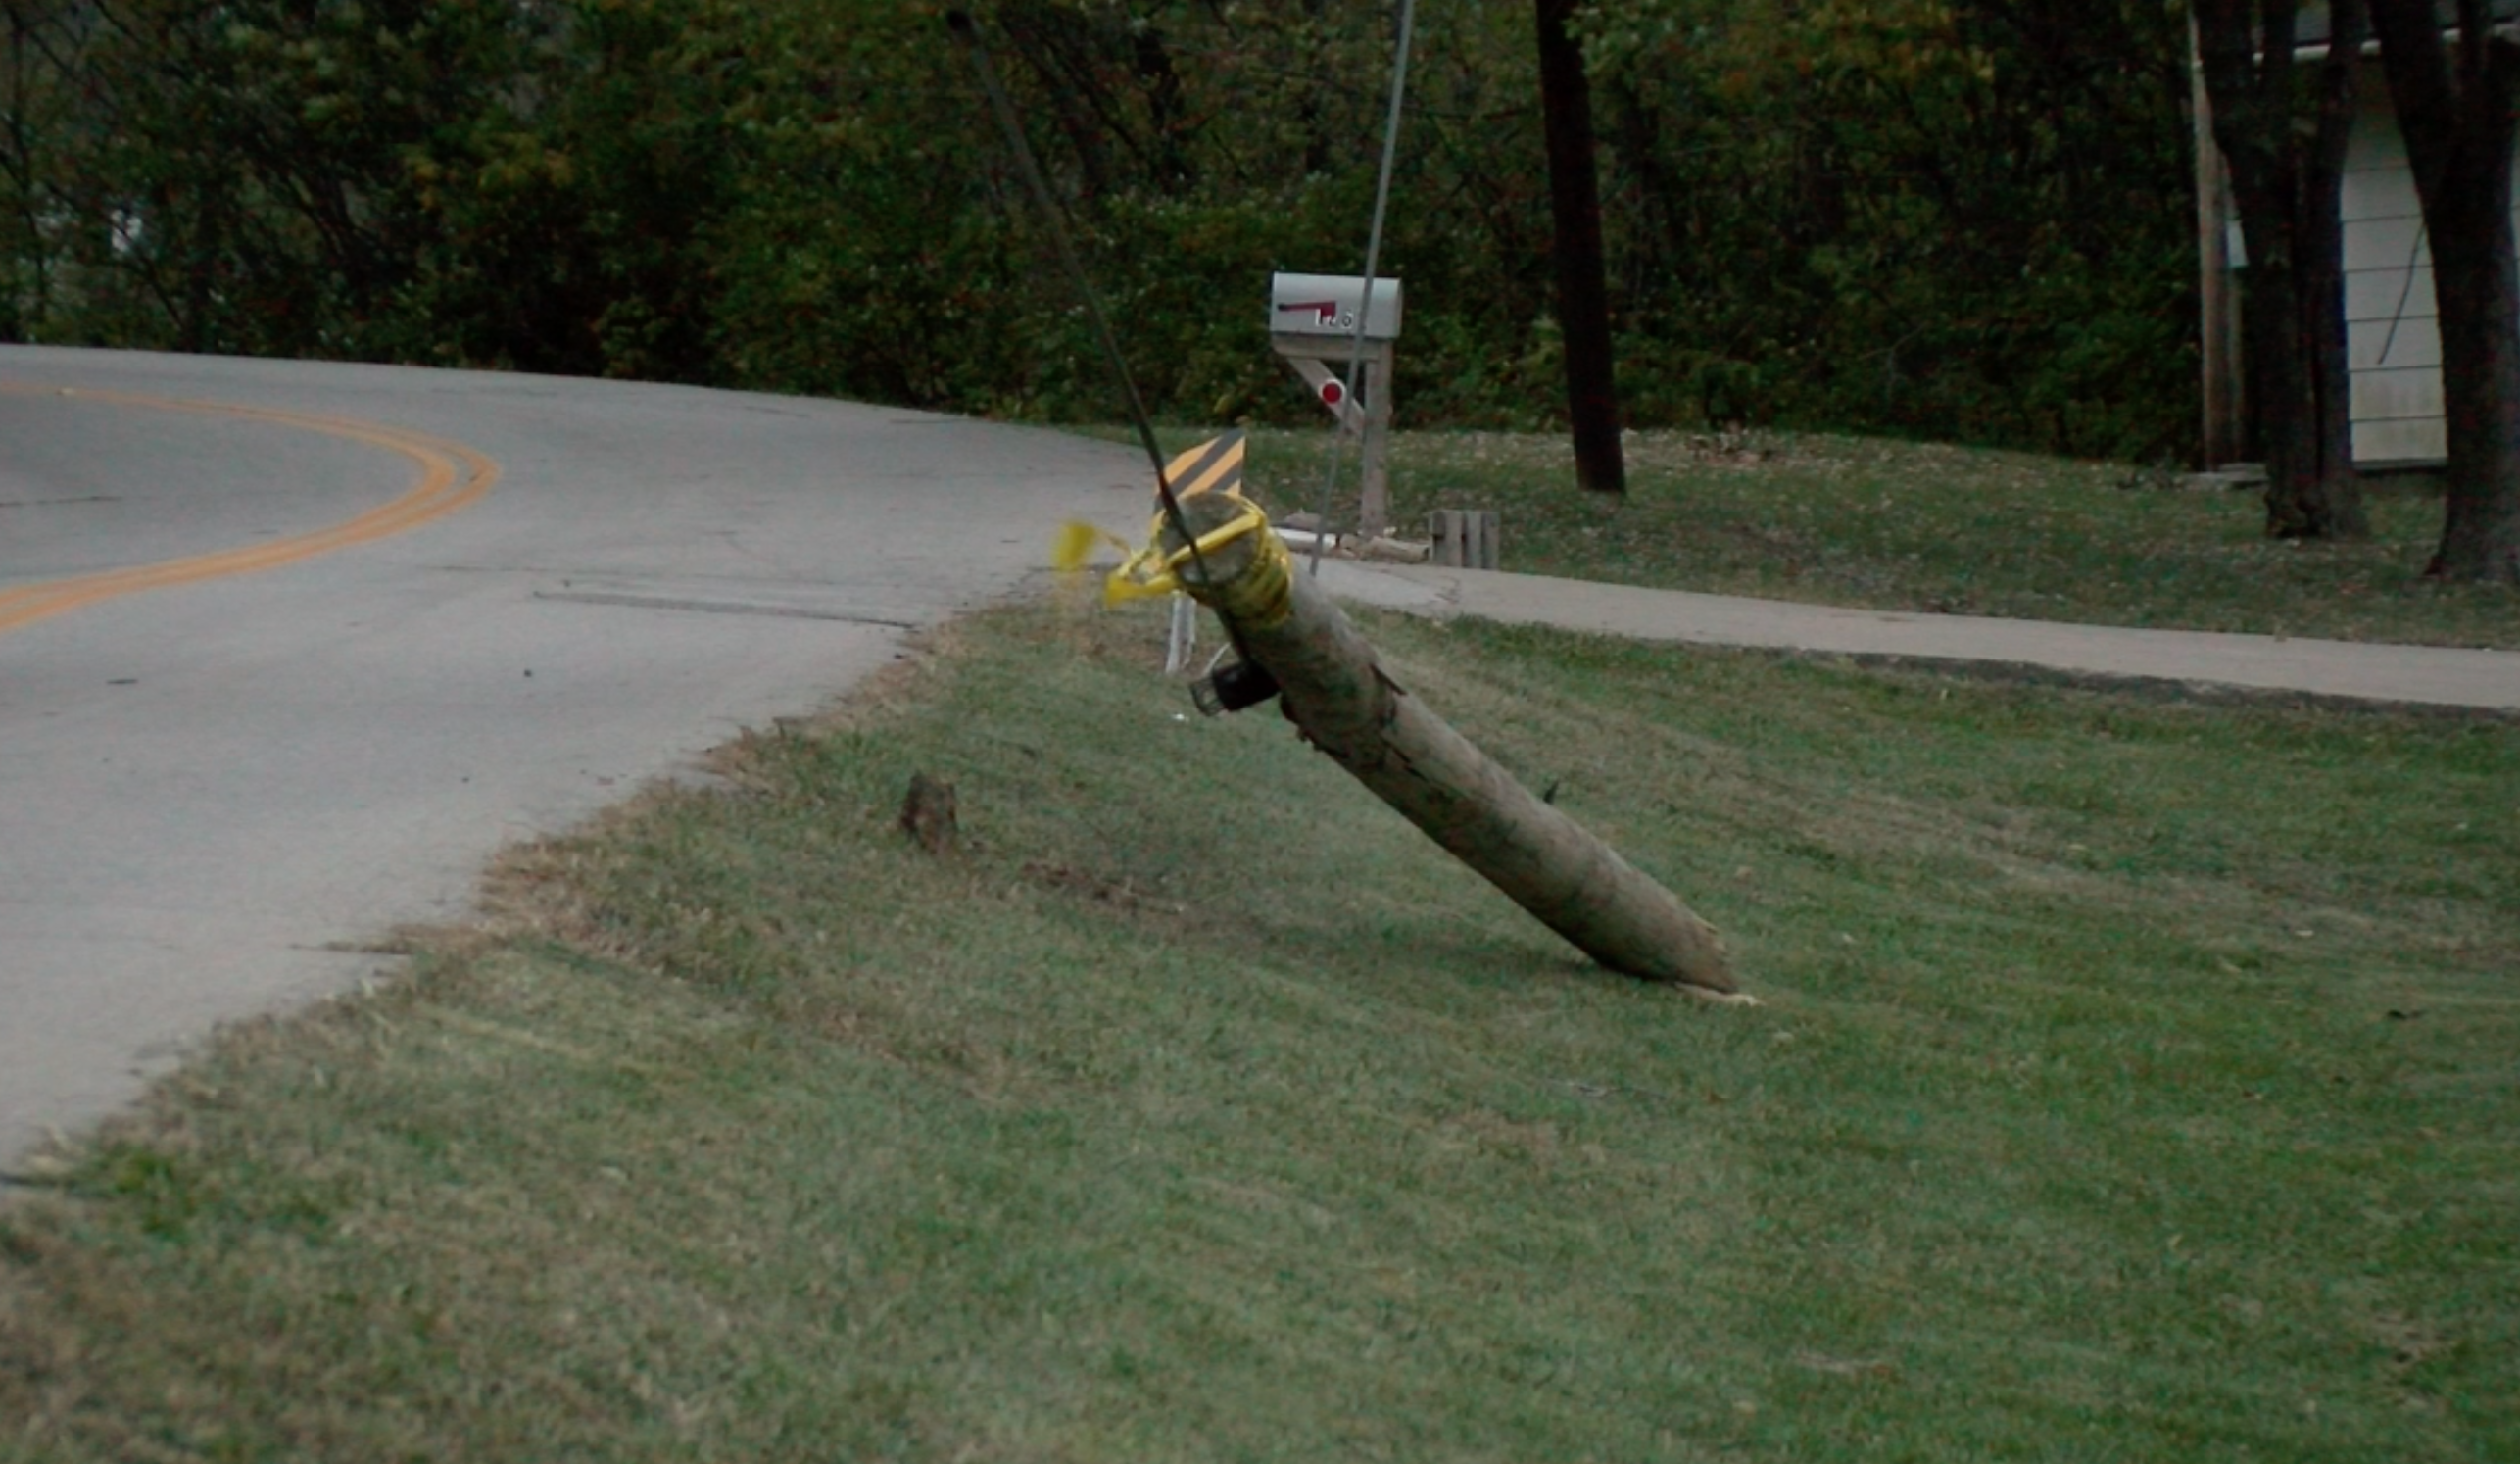 A downed power line on West Old Plank Road.